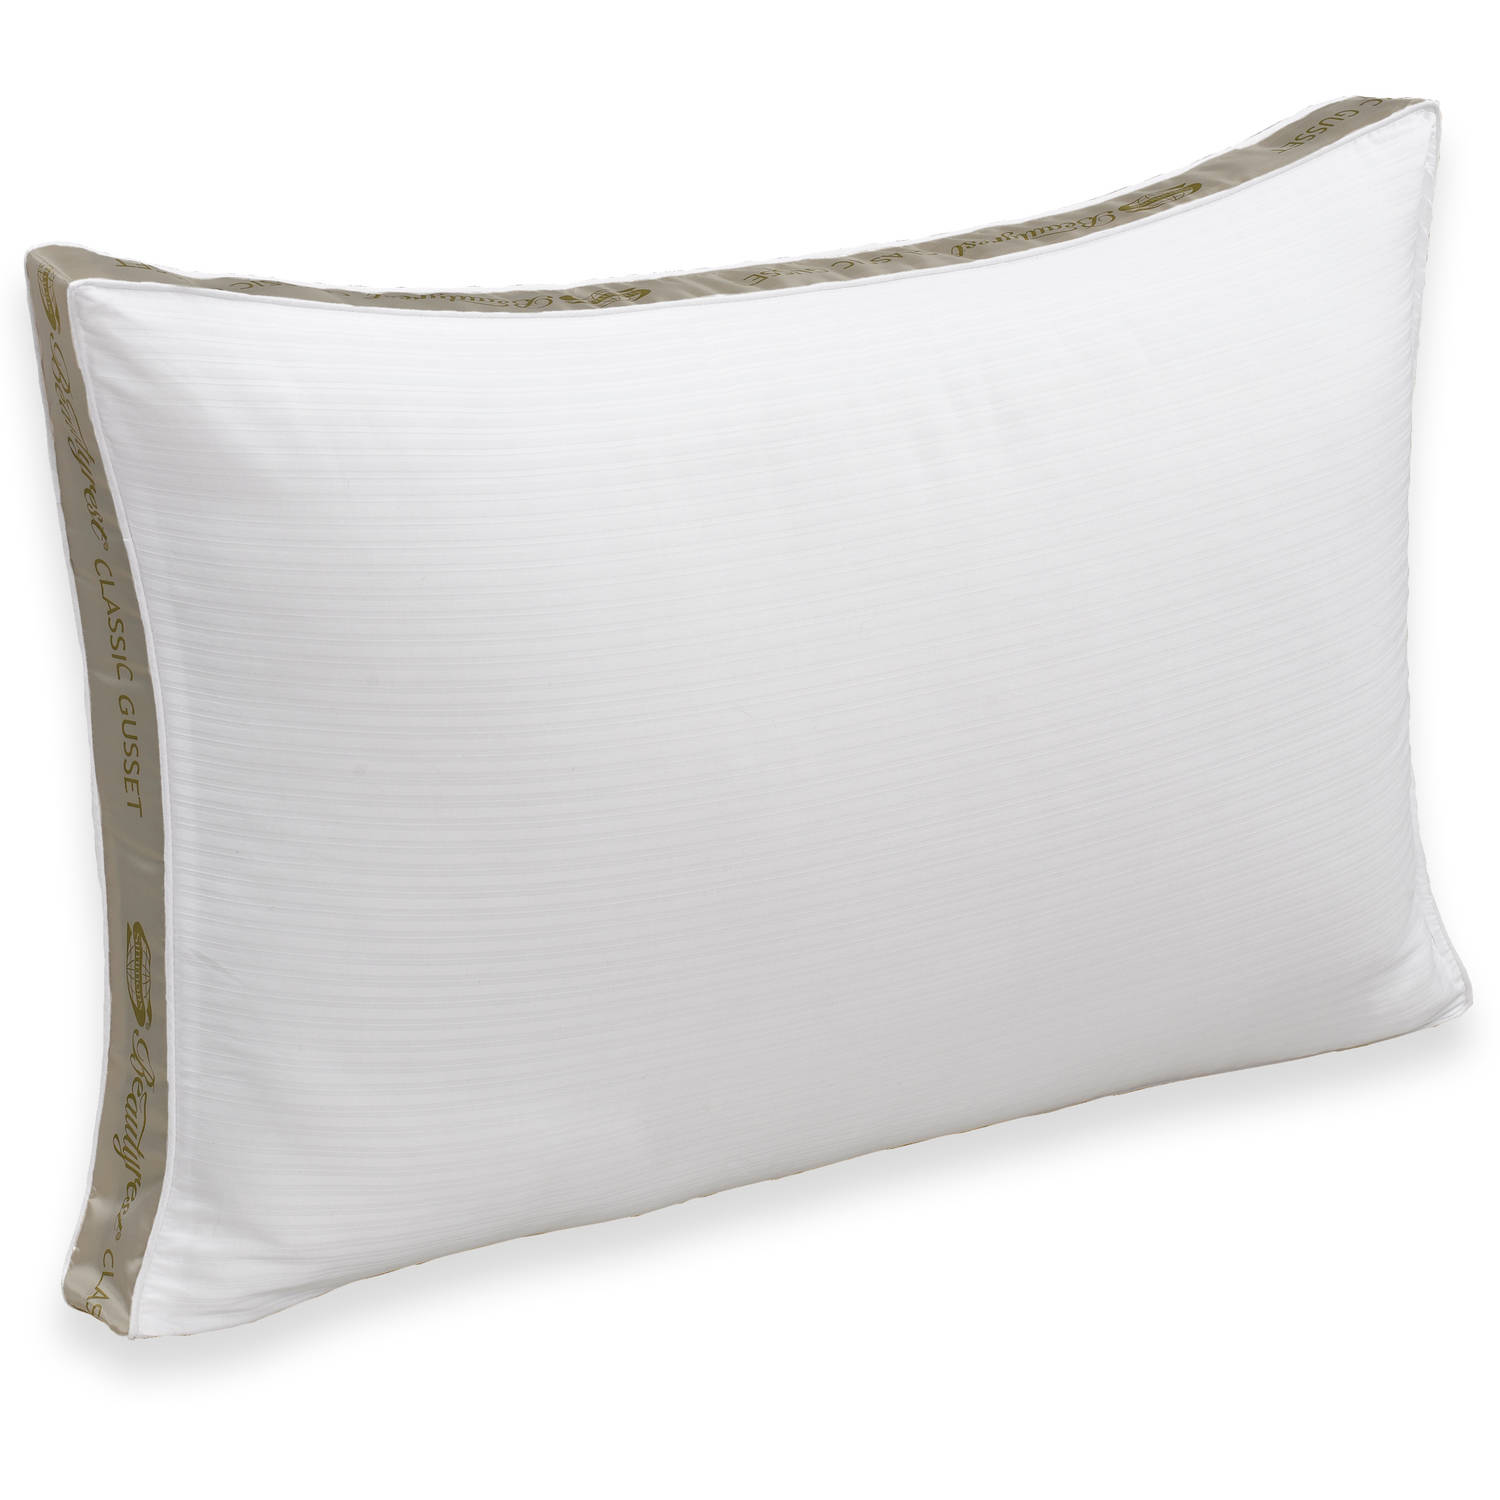 simmons beautyrest pima cotton firm pillow